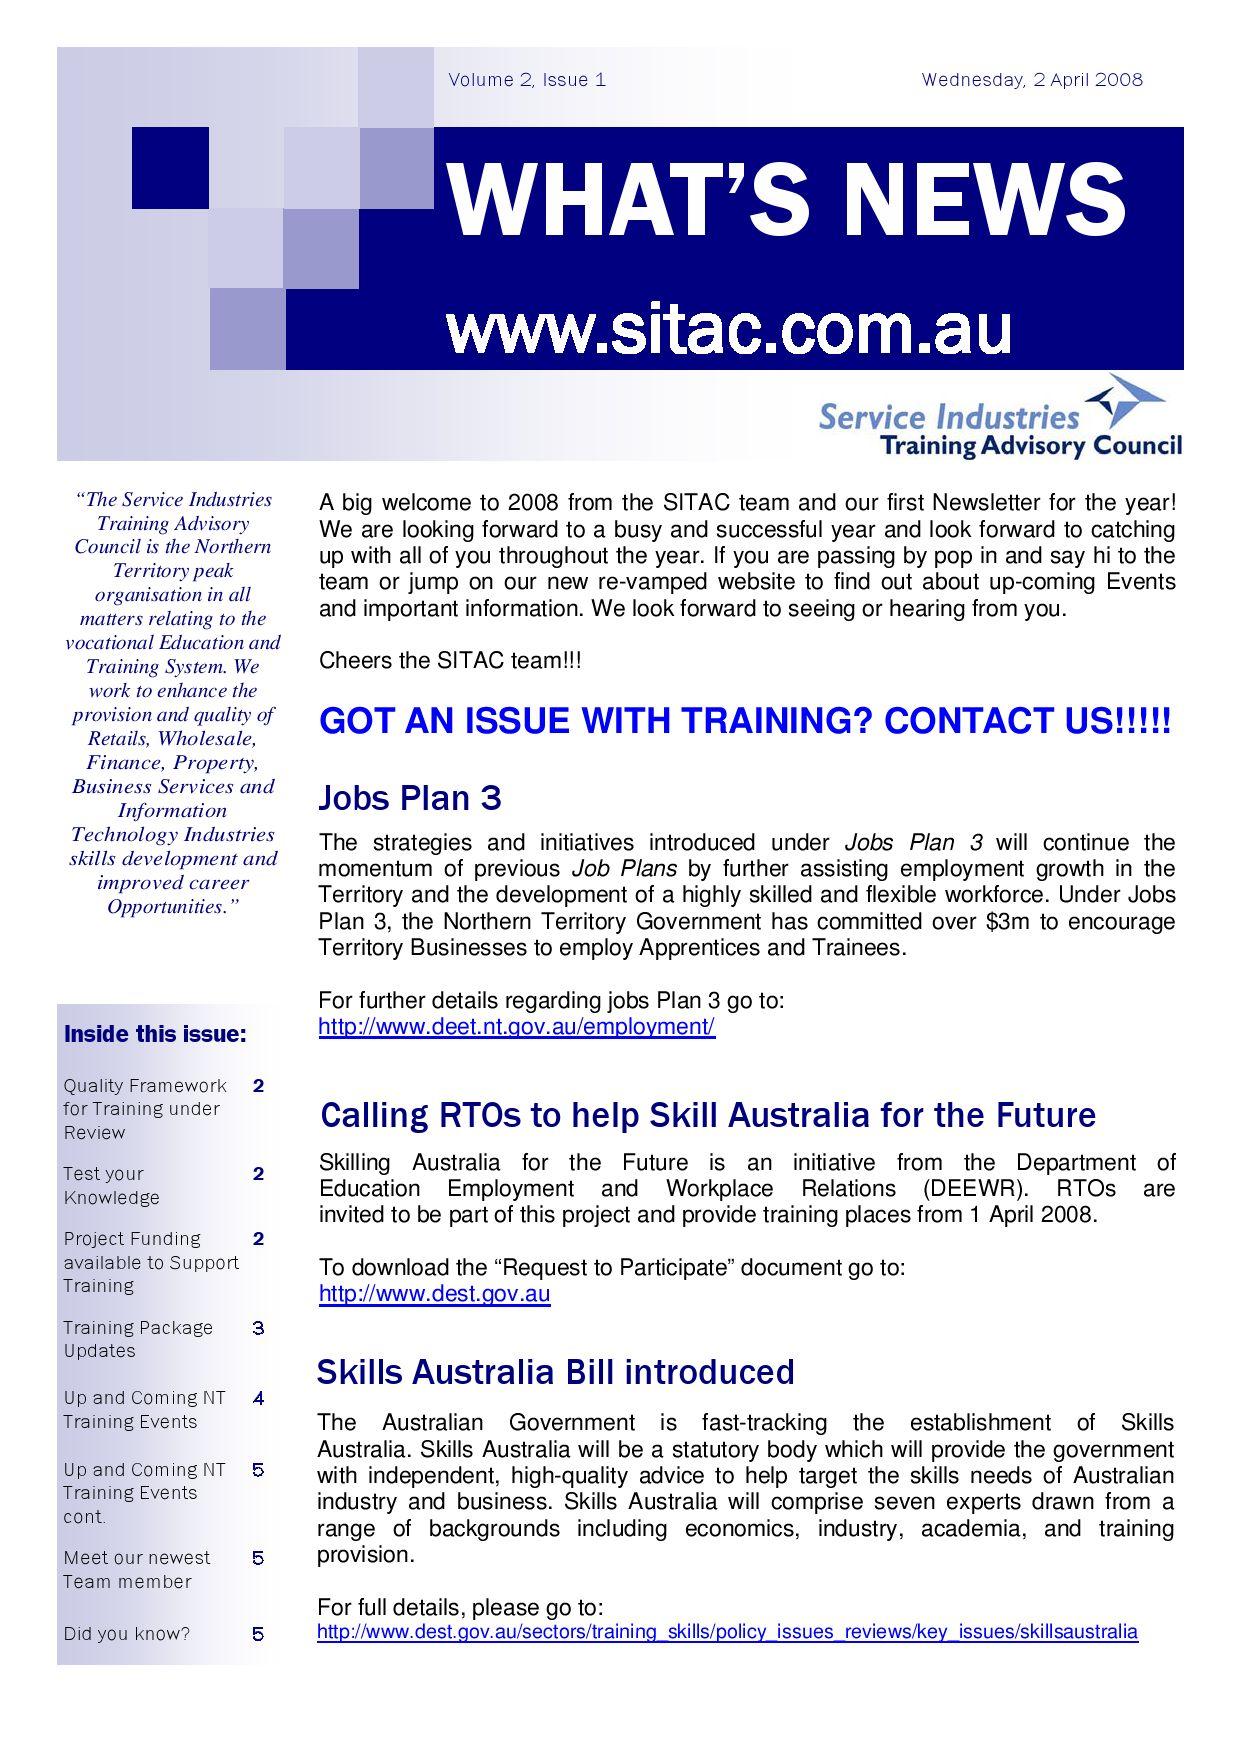 SITAC Newsletter - Volume 2 Issue 1 by Katharina Gerste - issuu